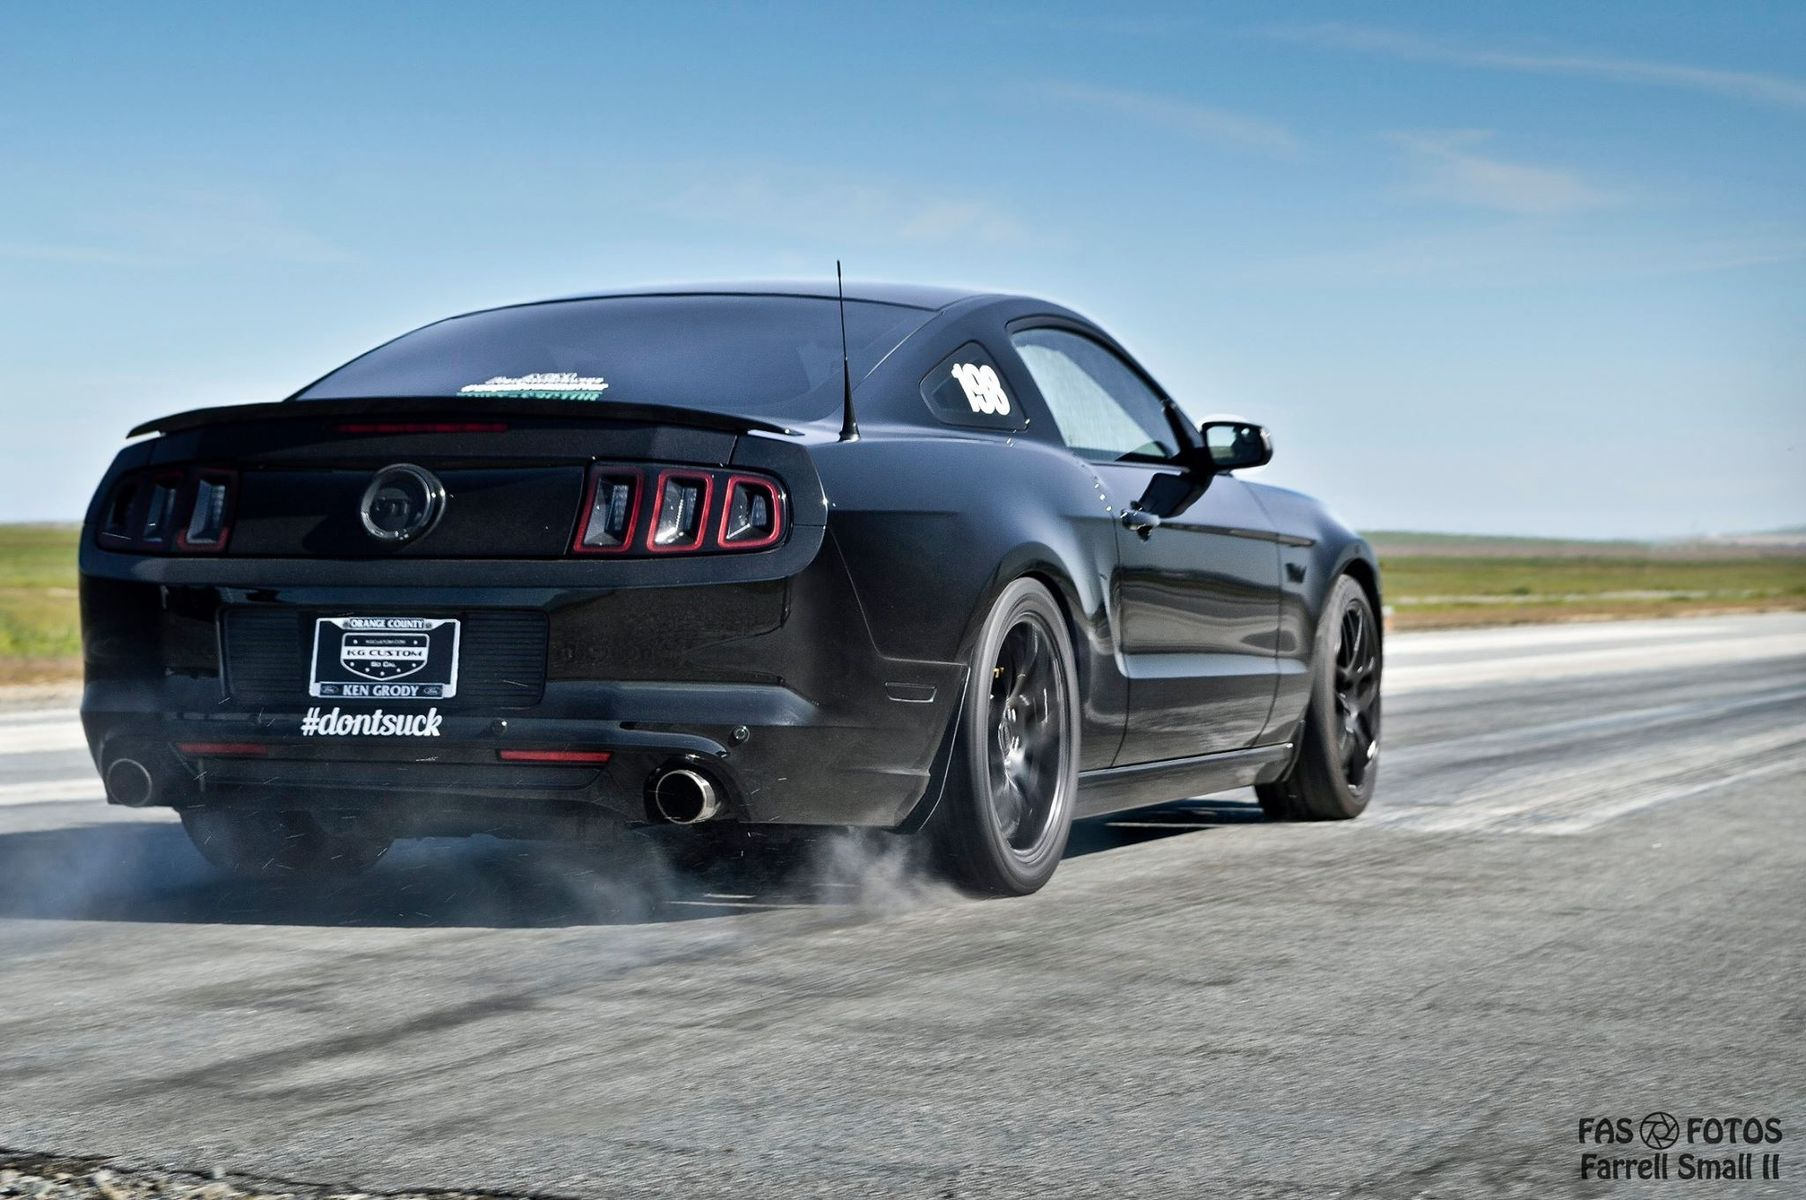 2013 Ford Mustang | Shift S3ctor Airstrip Attack